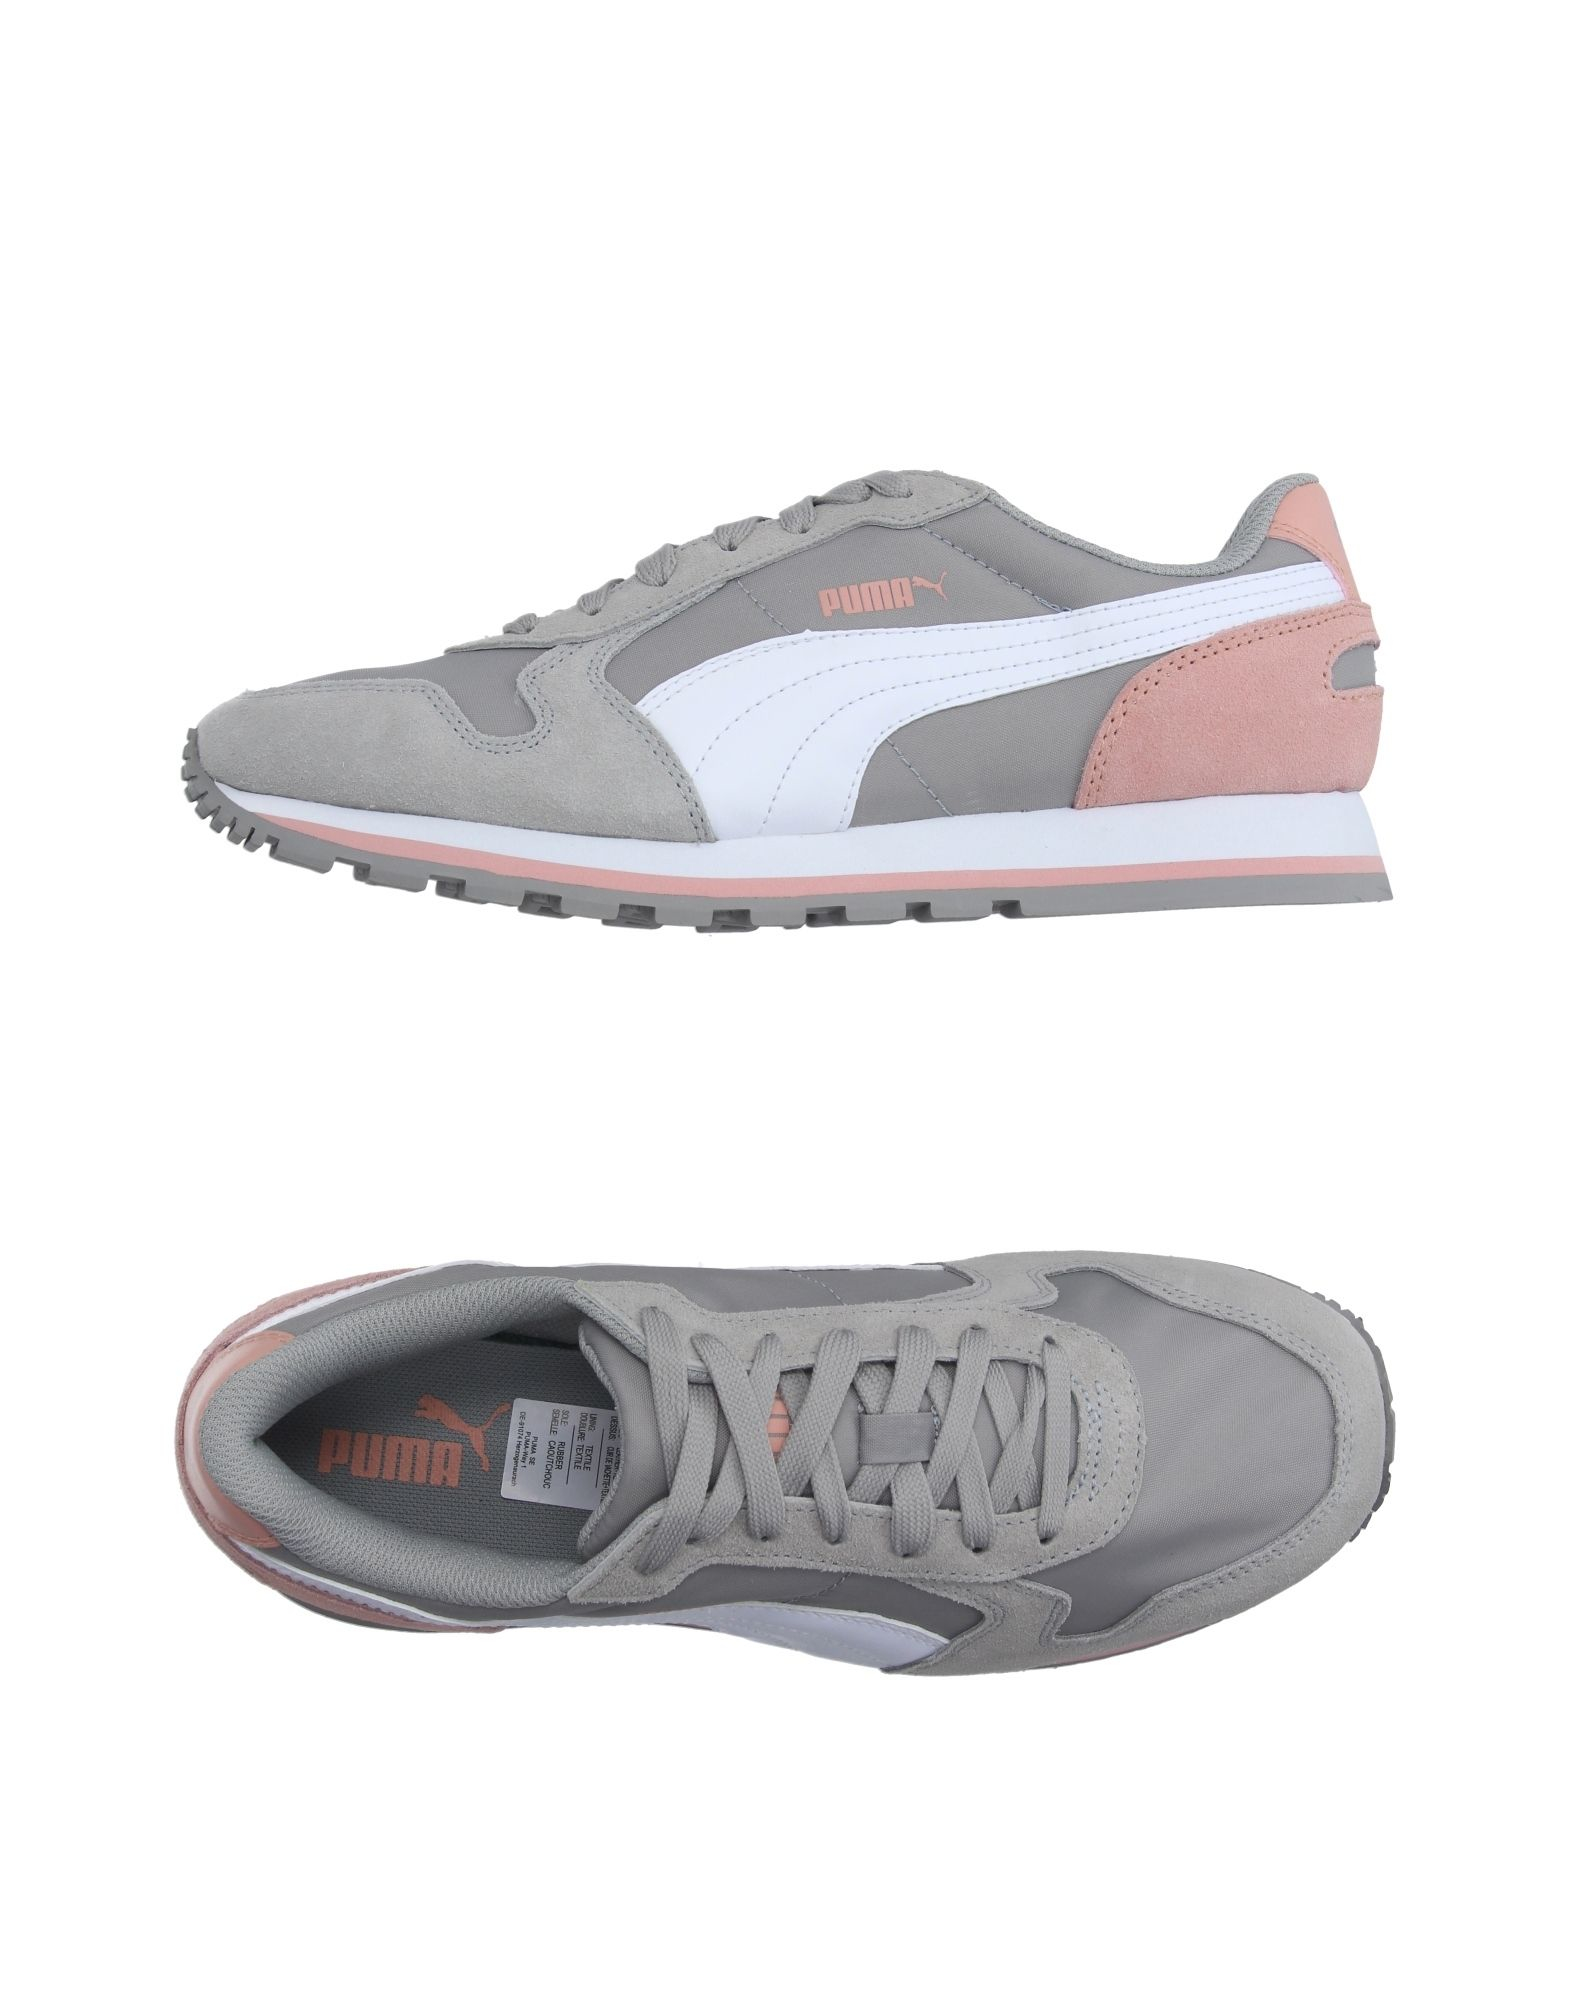 Nike Gray Low Top Shoes With Red Laces